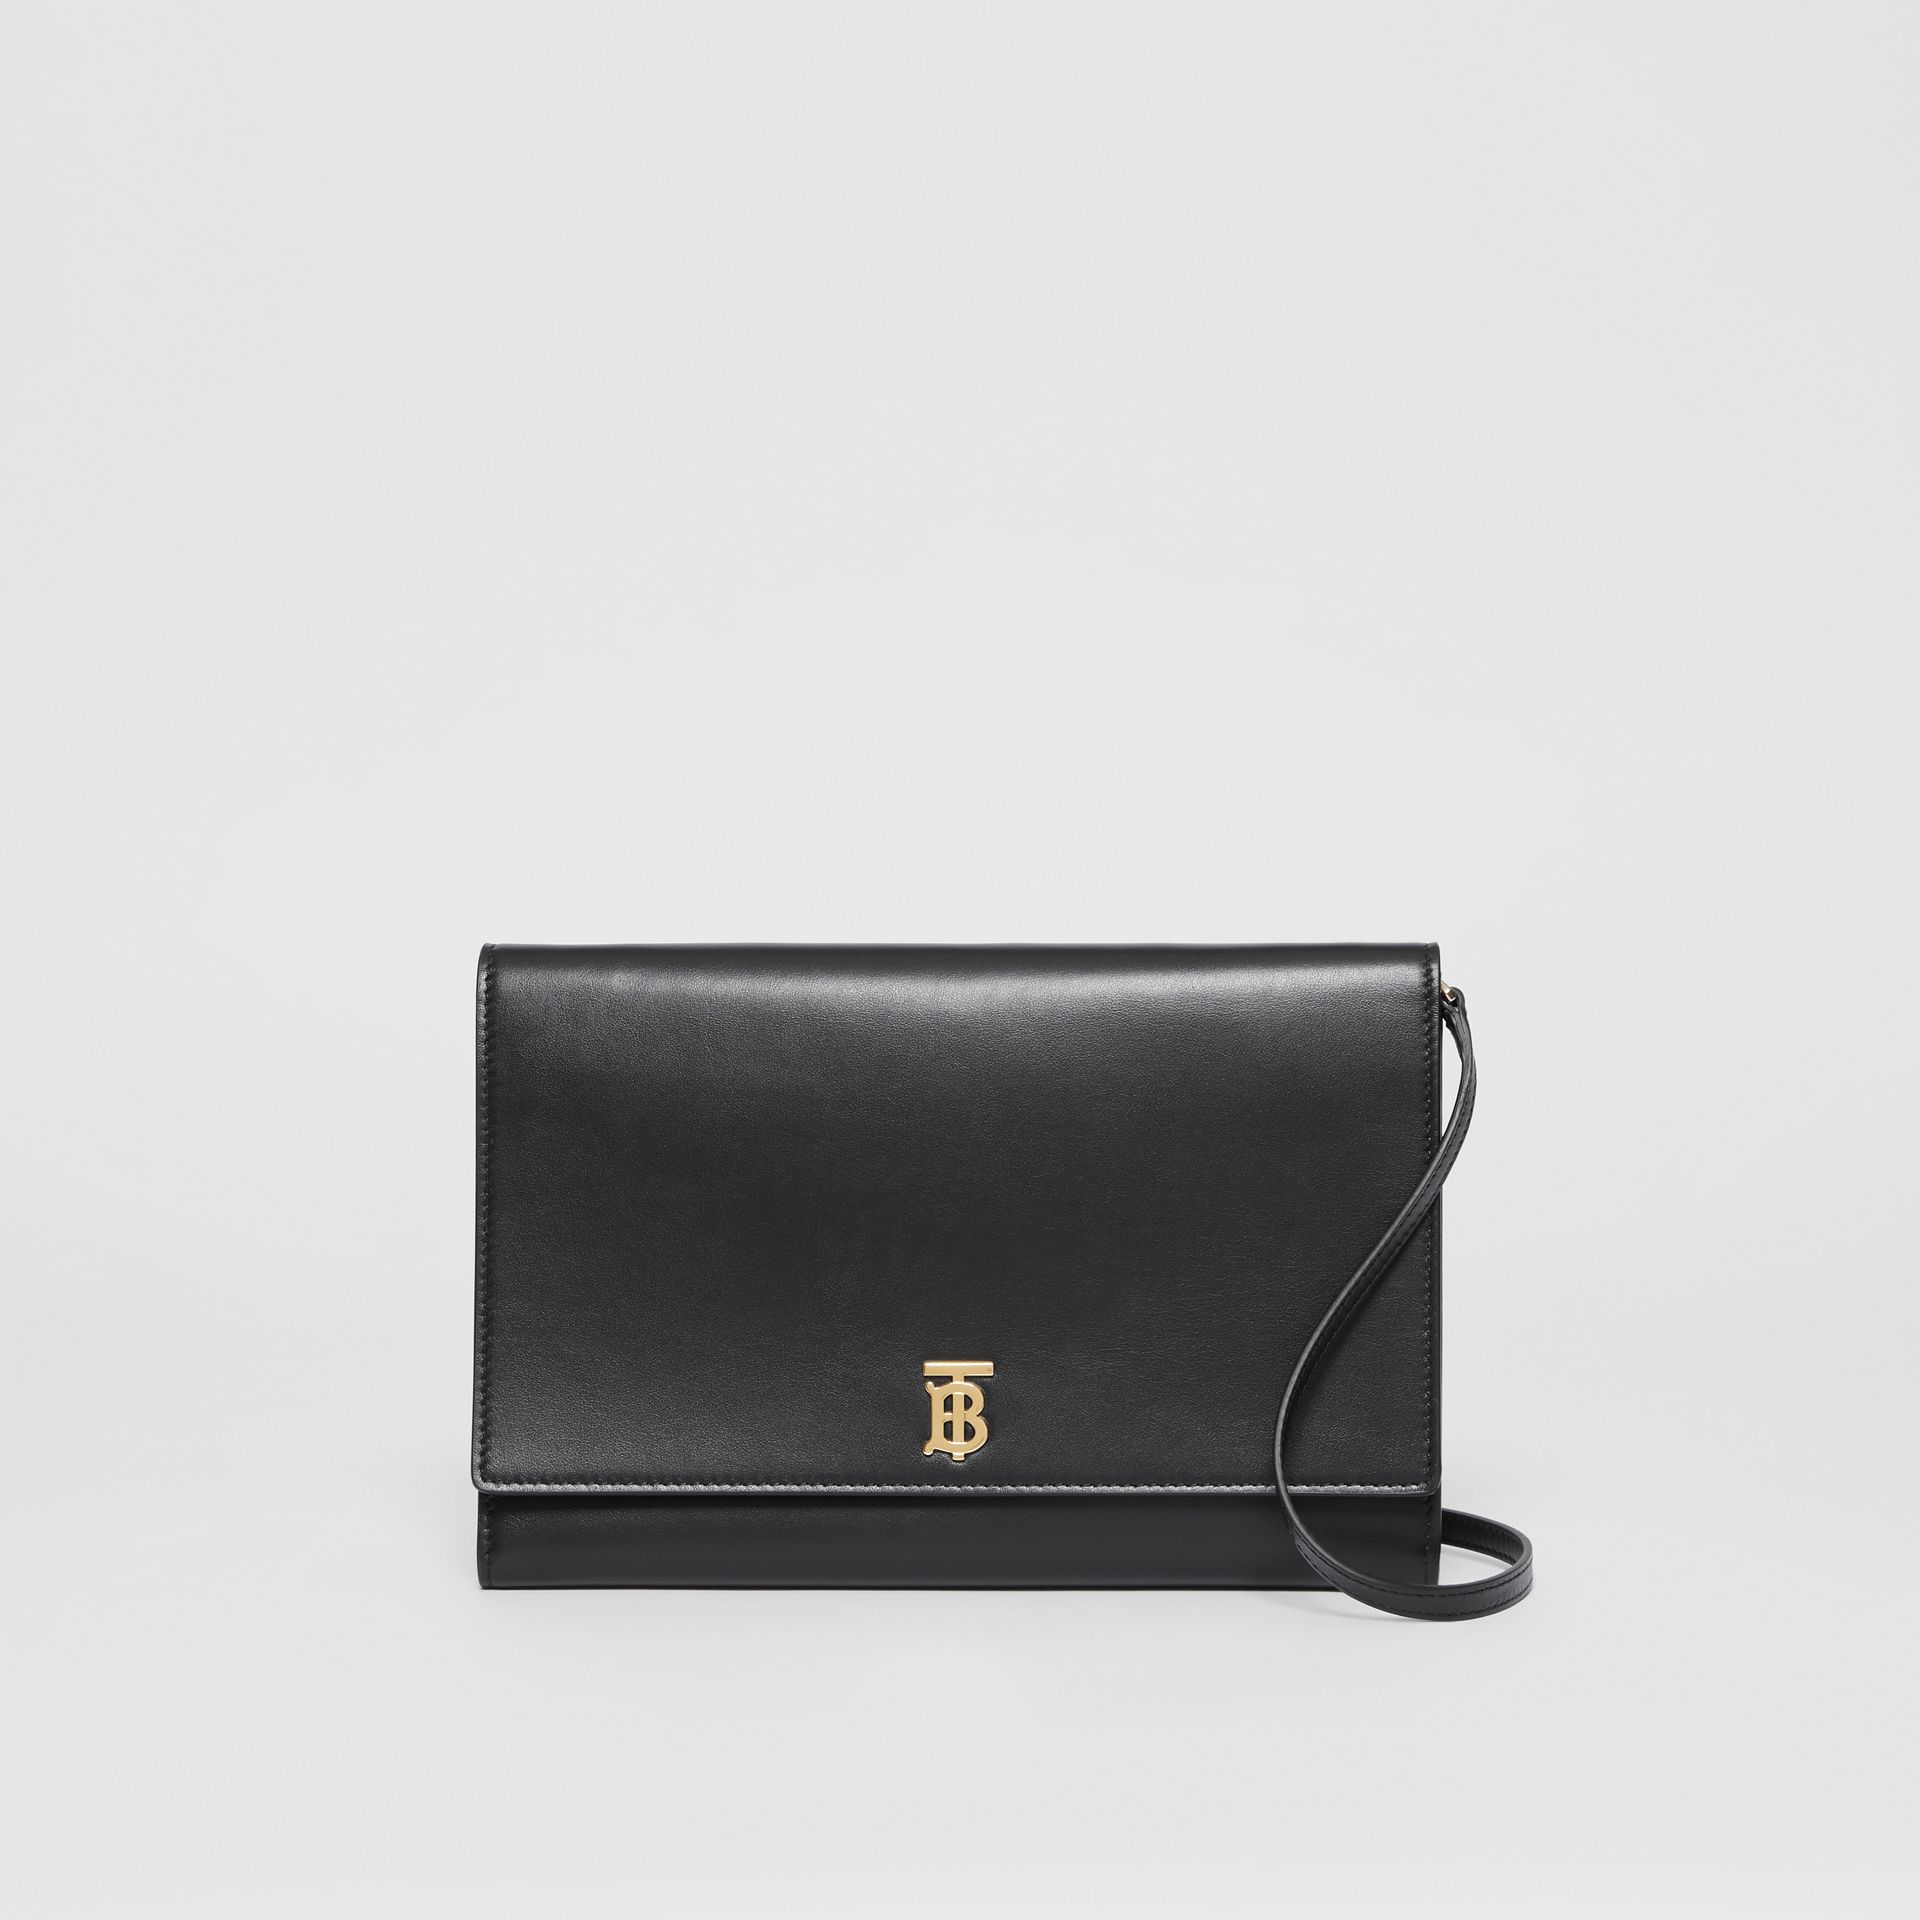 Monogram Motif Leather Bag with Detachable Strap in Black - Women | Burberry - gallery image 0